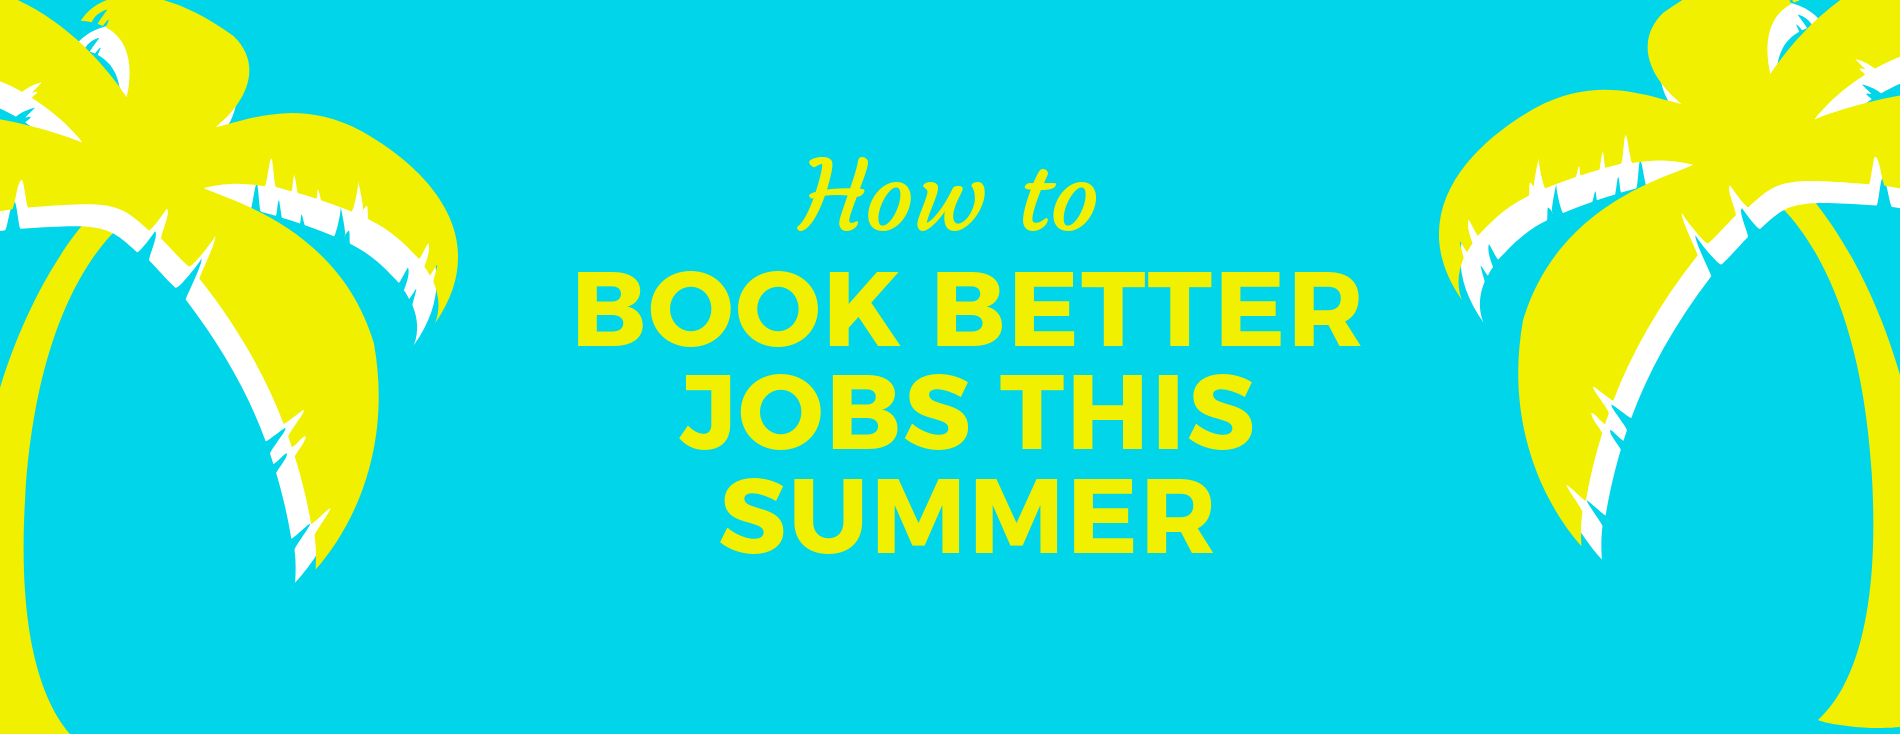 How to Book Better Jobs This Summer